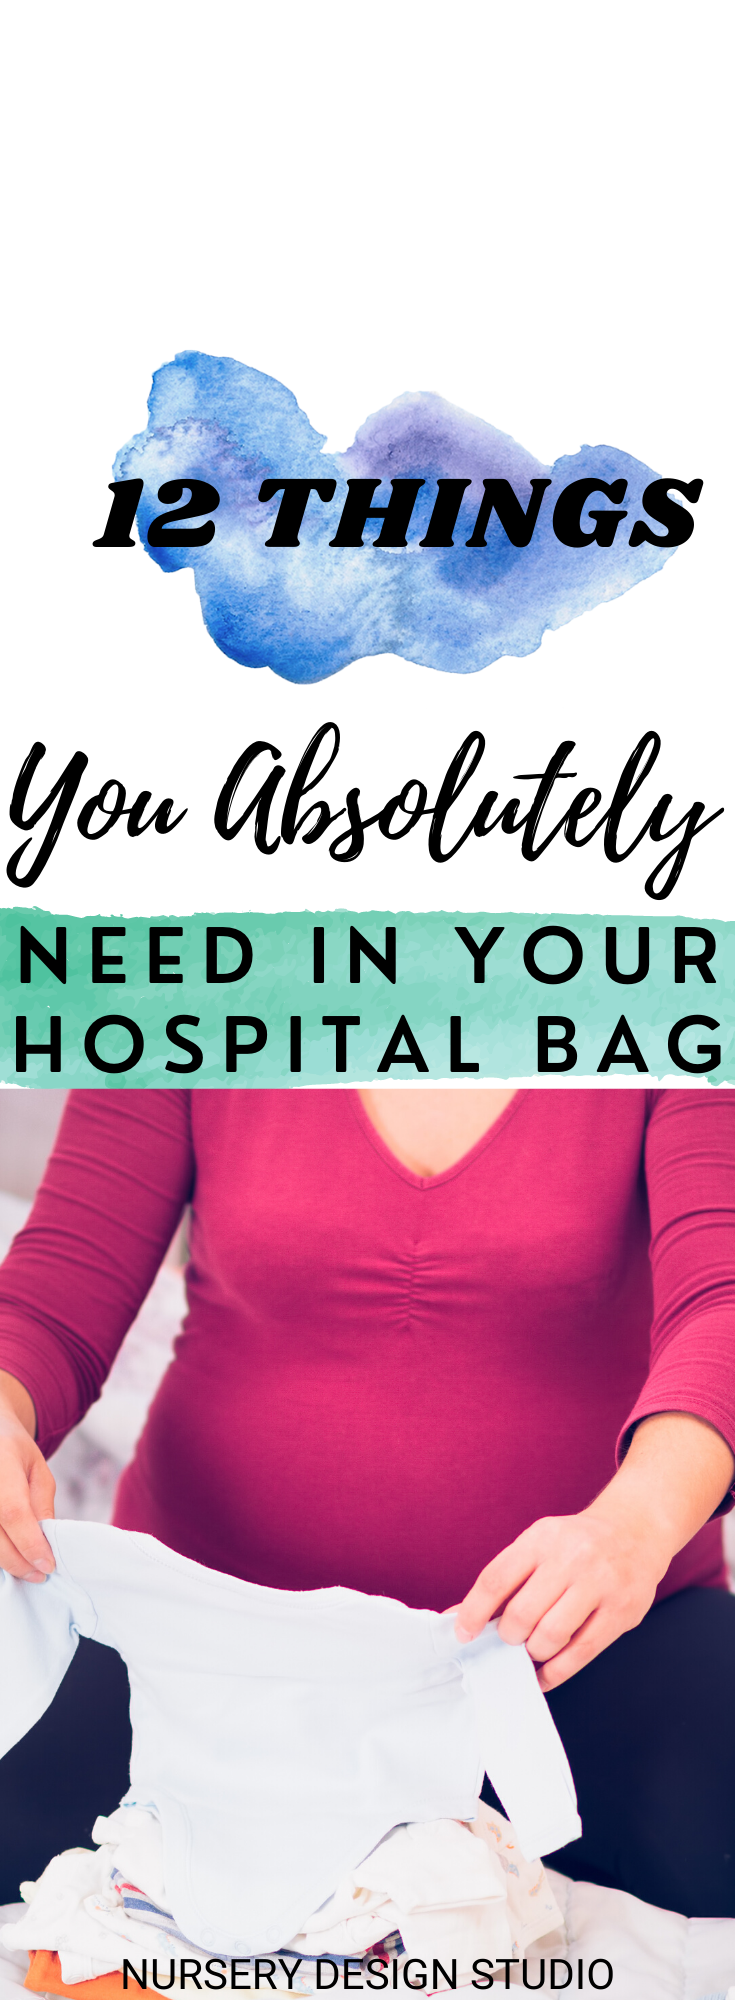 things to pack in hospital bag